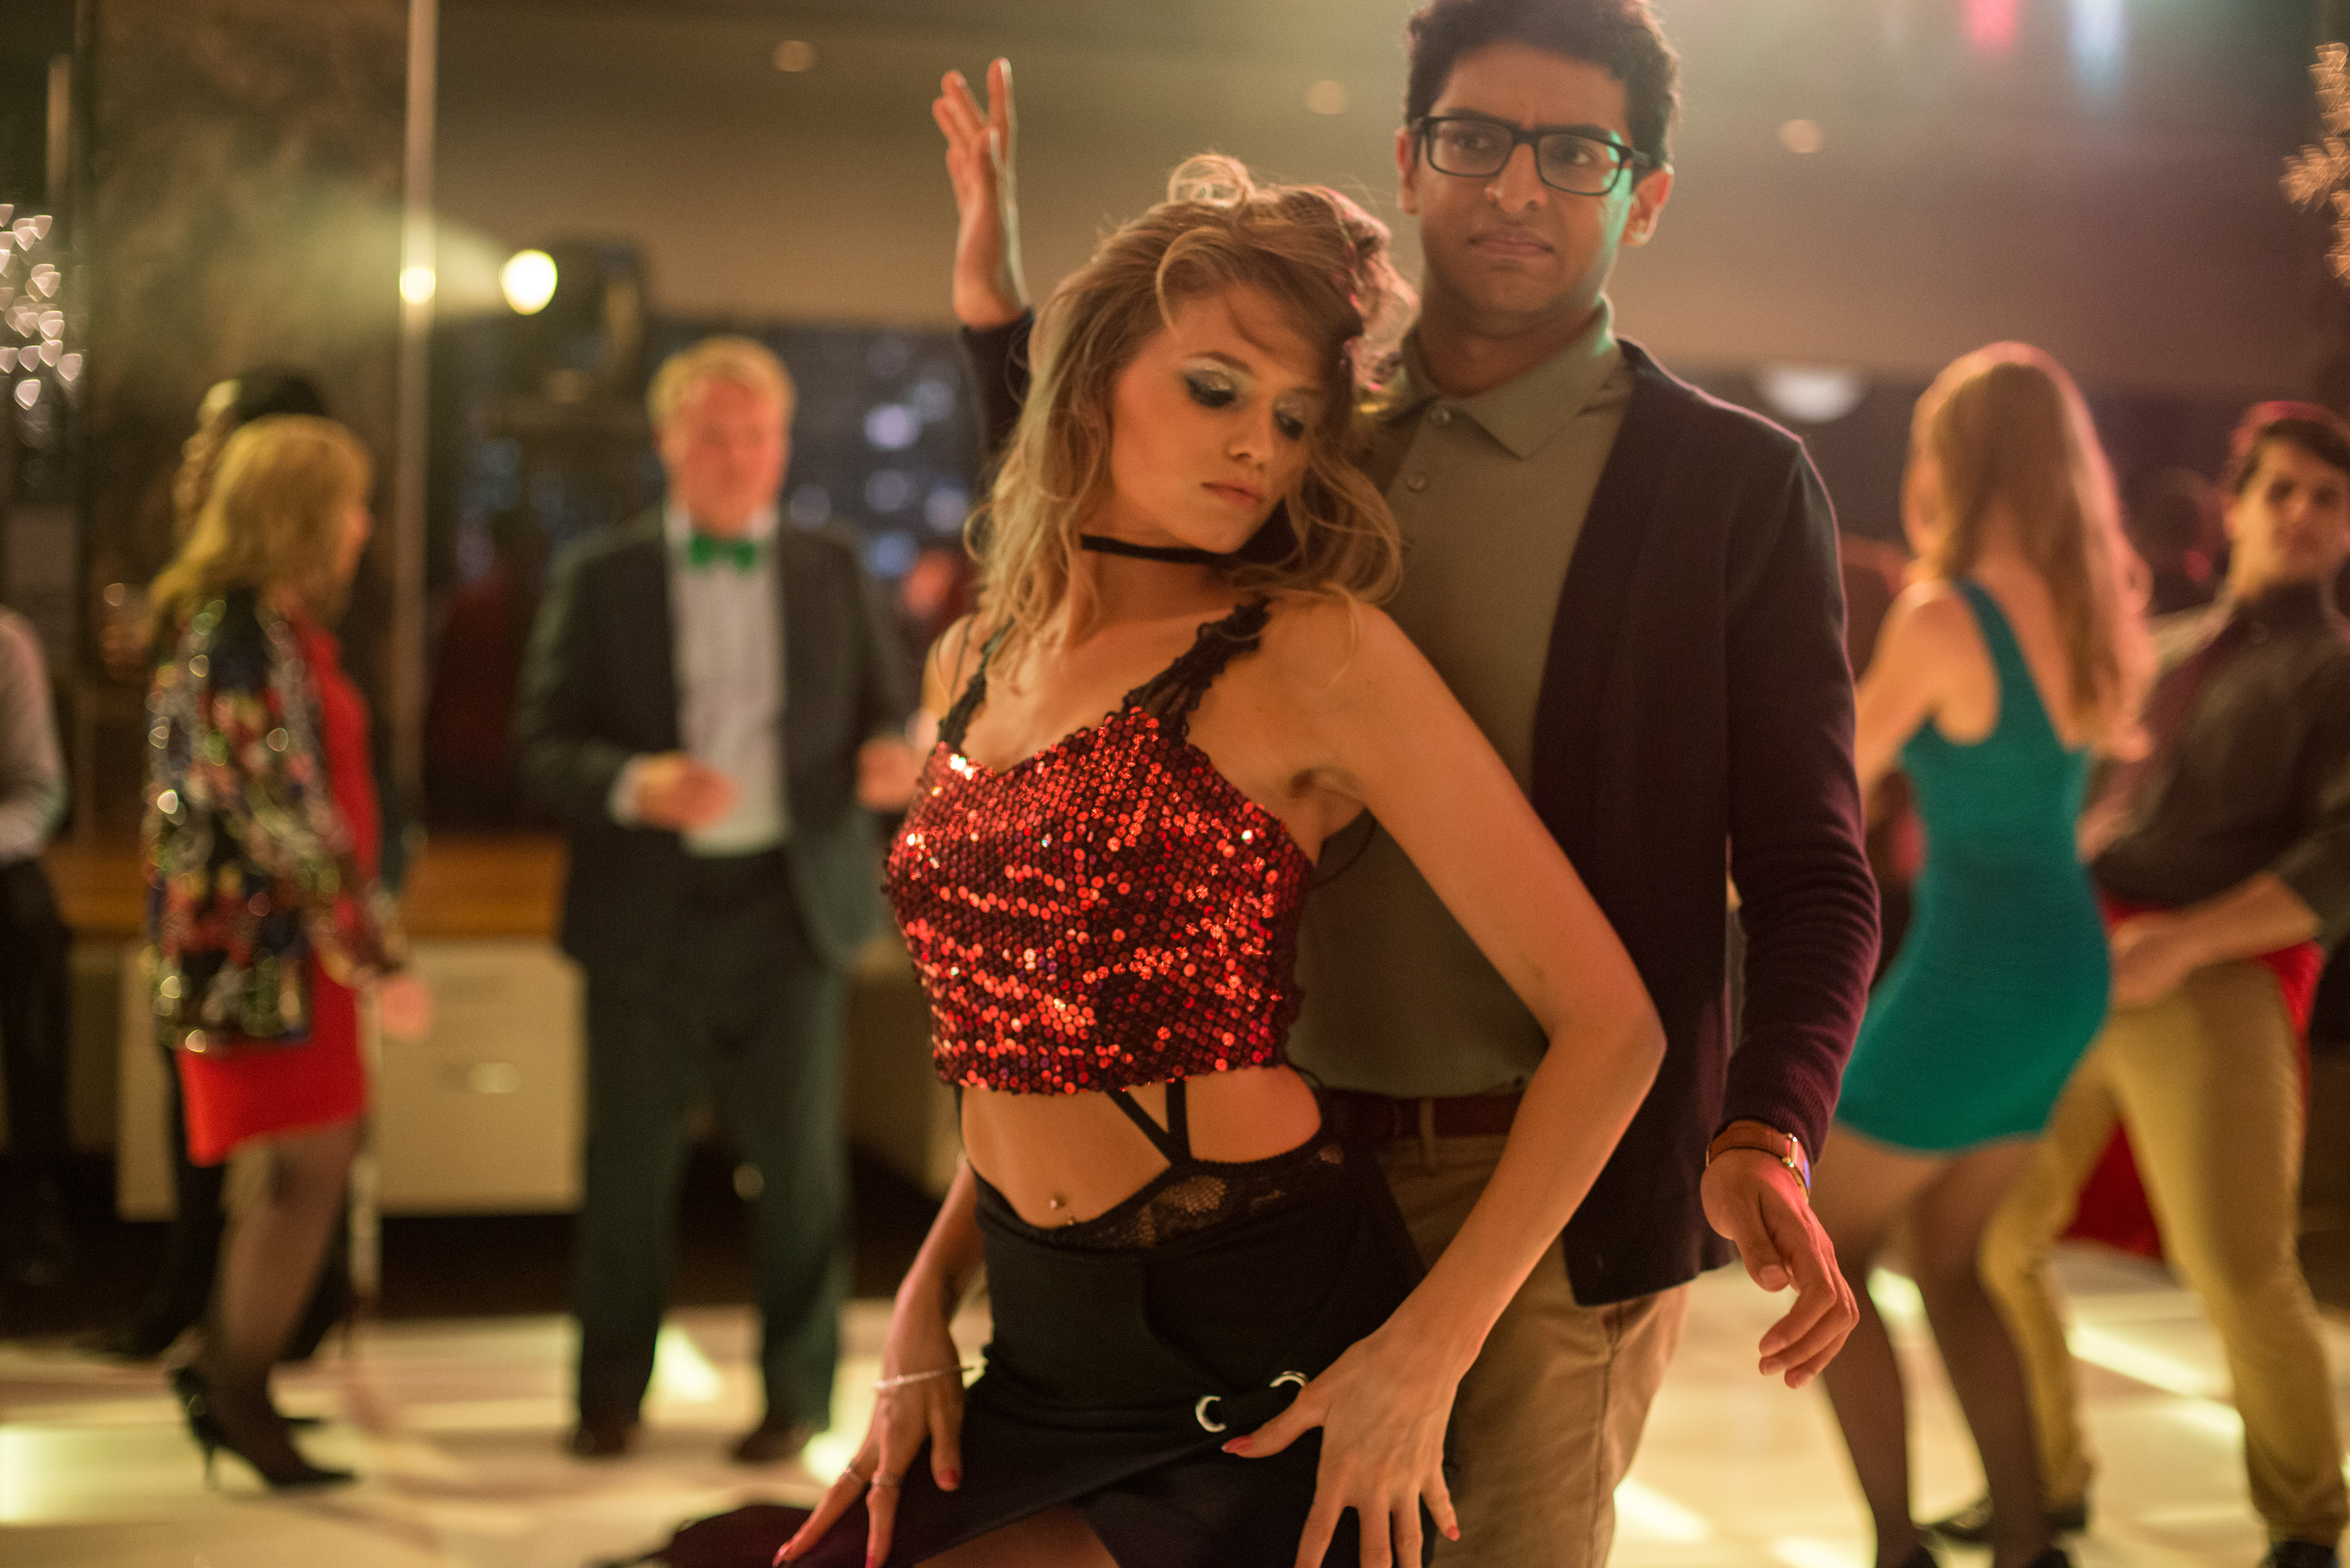 photos be sure to rsvp for office christmas party front row karan soni as nate and abbey lee as savannah in office christmas party ©paramount